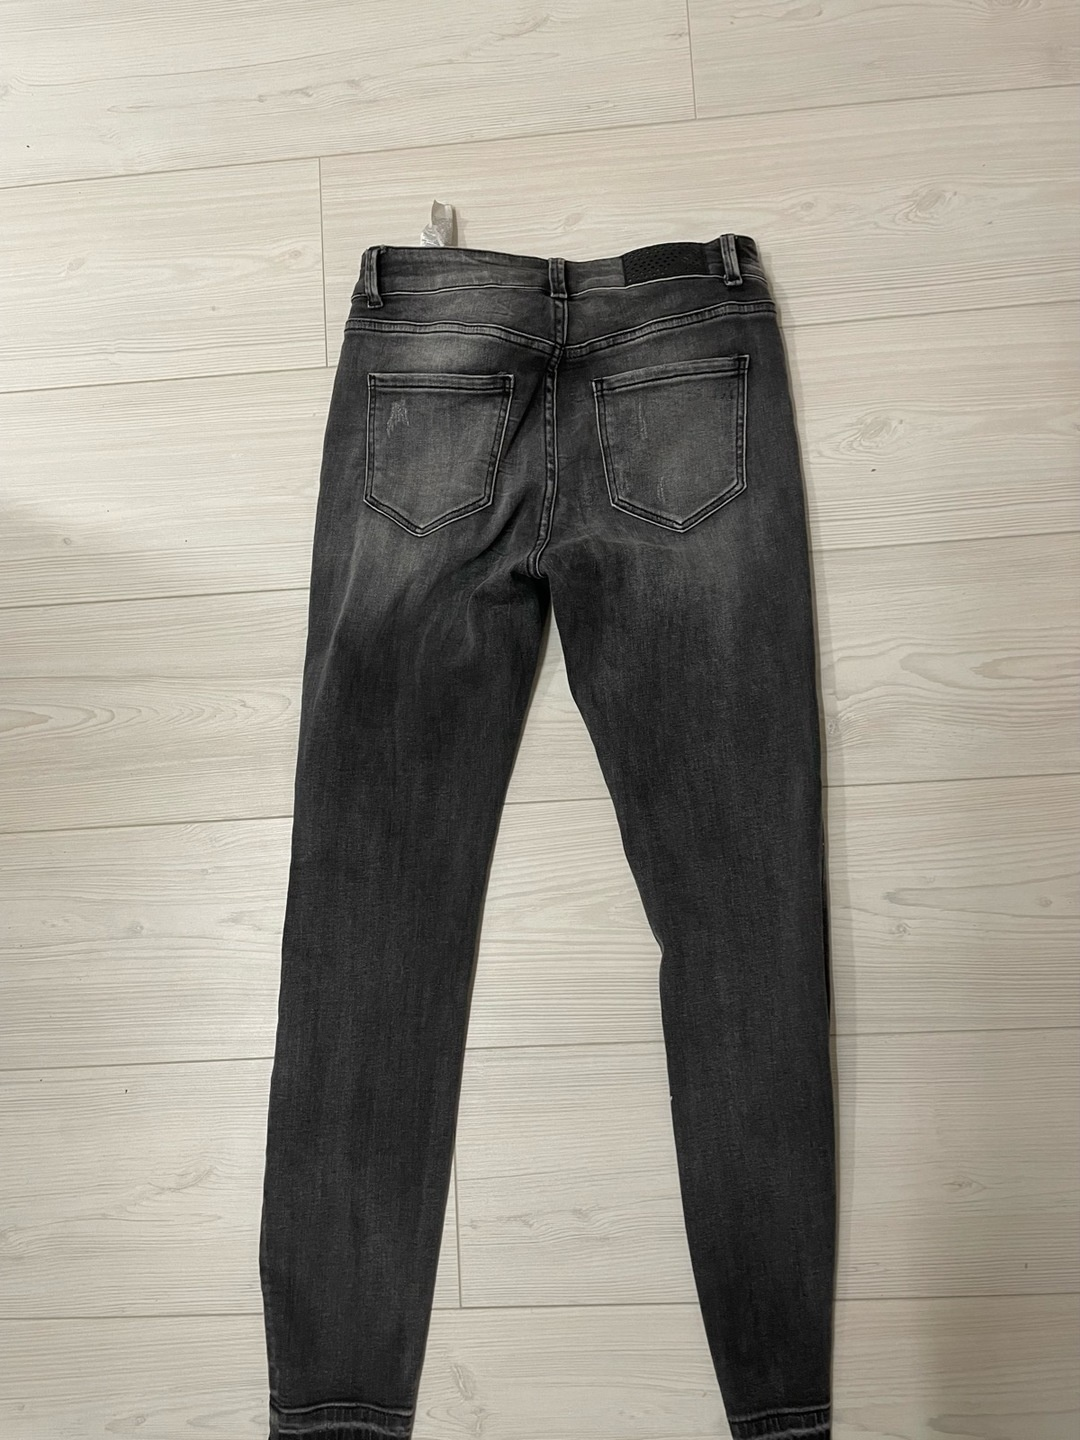 Women's trousers & jeans - FB SISTER photo 3